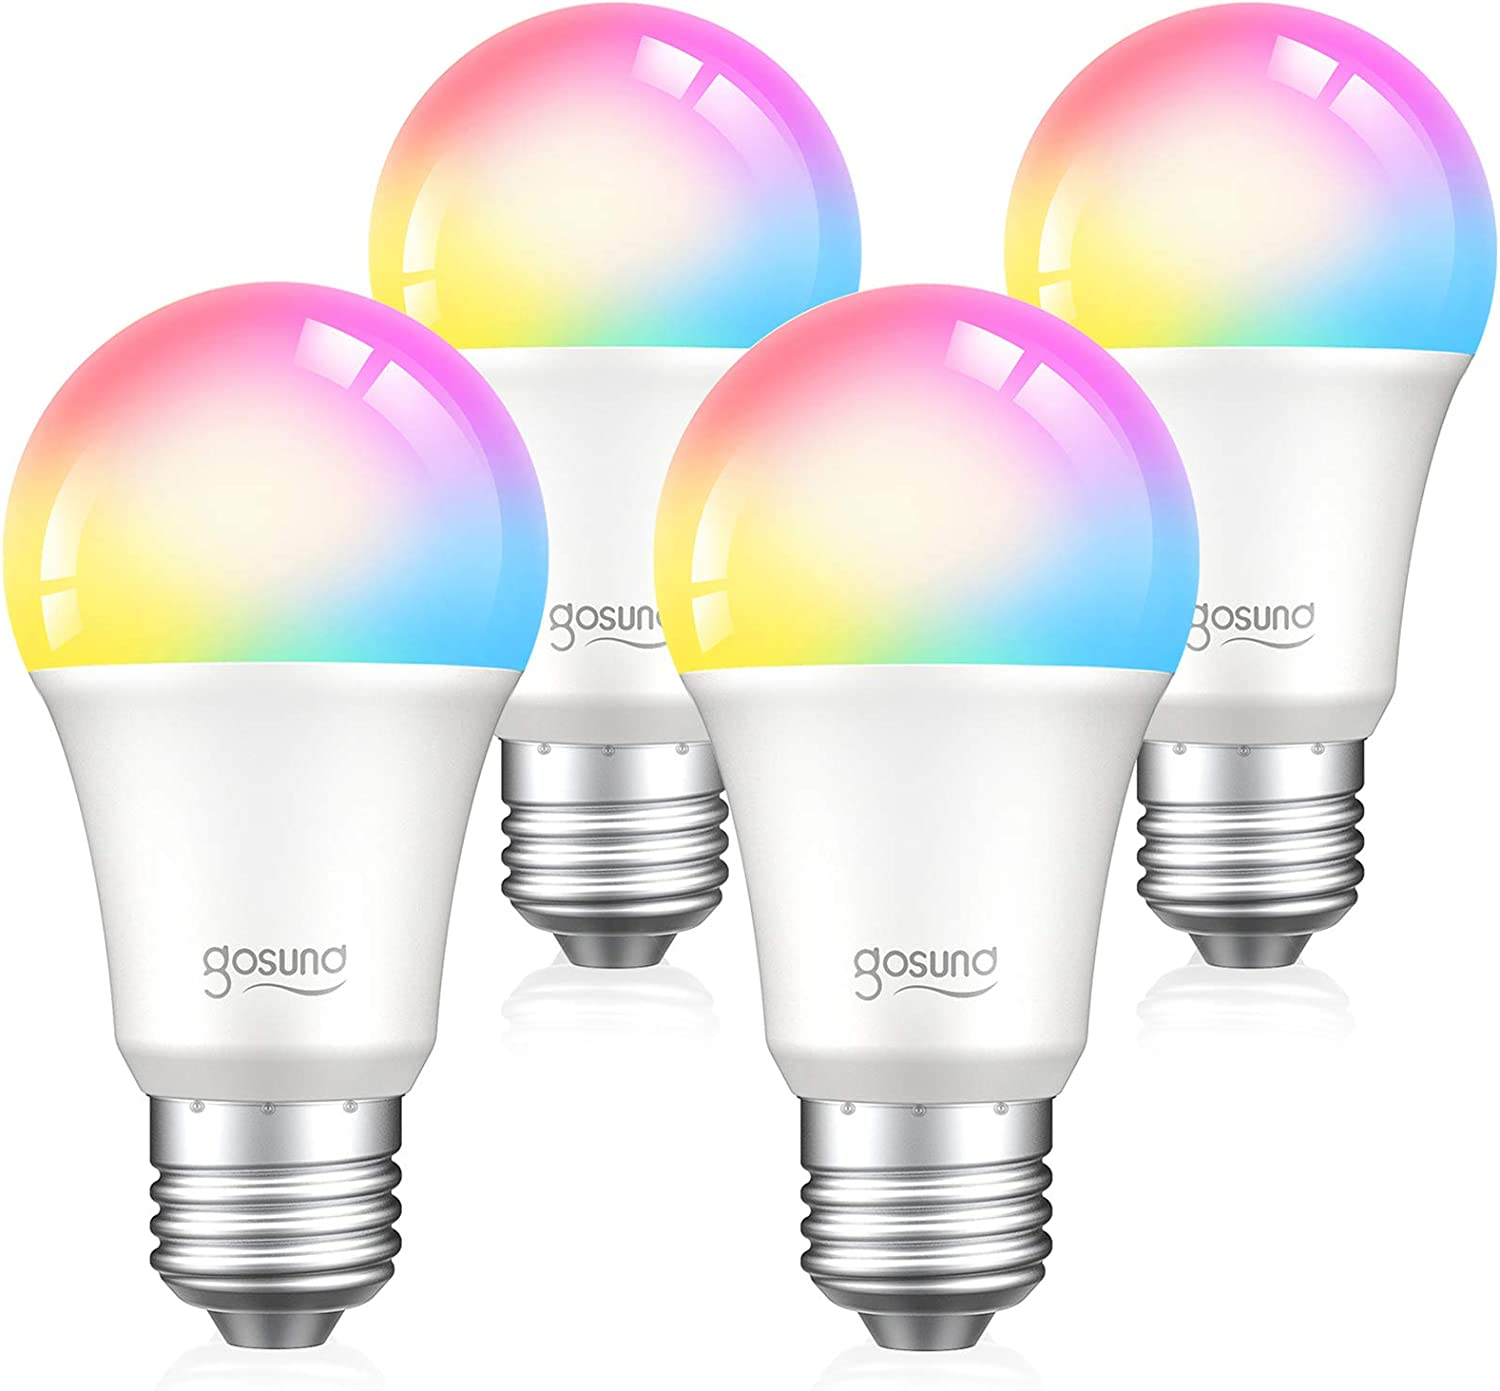 Smart Light Bulb Works with Alexa Google Home, Gosund E26 RGB Color Changing Light Bulb with App 8W A19 Dimmable Smart LED Bulb 75W Equivalent, 2.4GHz WiFi Only, No Hub Required 4 Pack